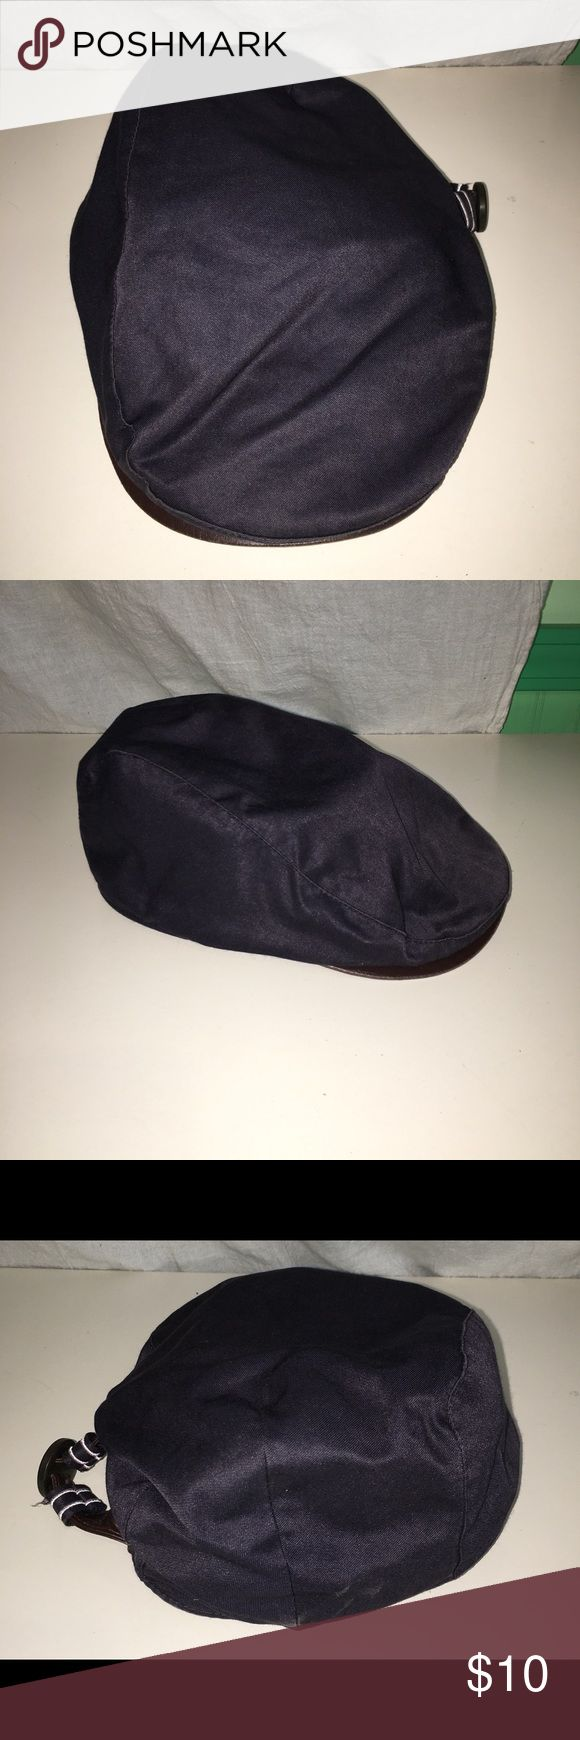 Grace Brand Gatsby/Newsboy/Driving Cap Womens This Grace blue cap is a womans O/S. Has a decorative buckle on one side. Has been sterilized with isopropyl alcohol spray. About 7-8 years old. In good condition. Grace Accessories Hats